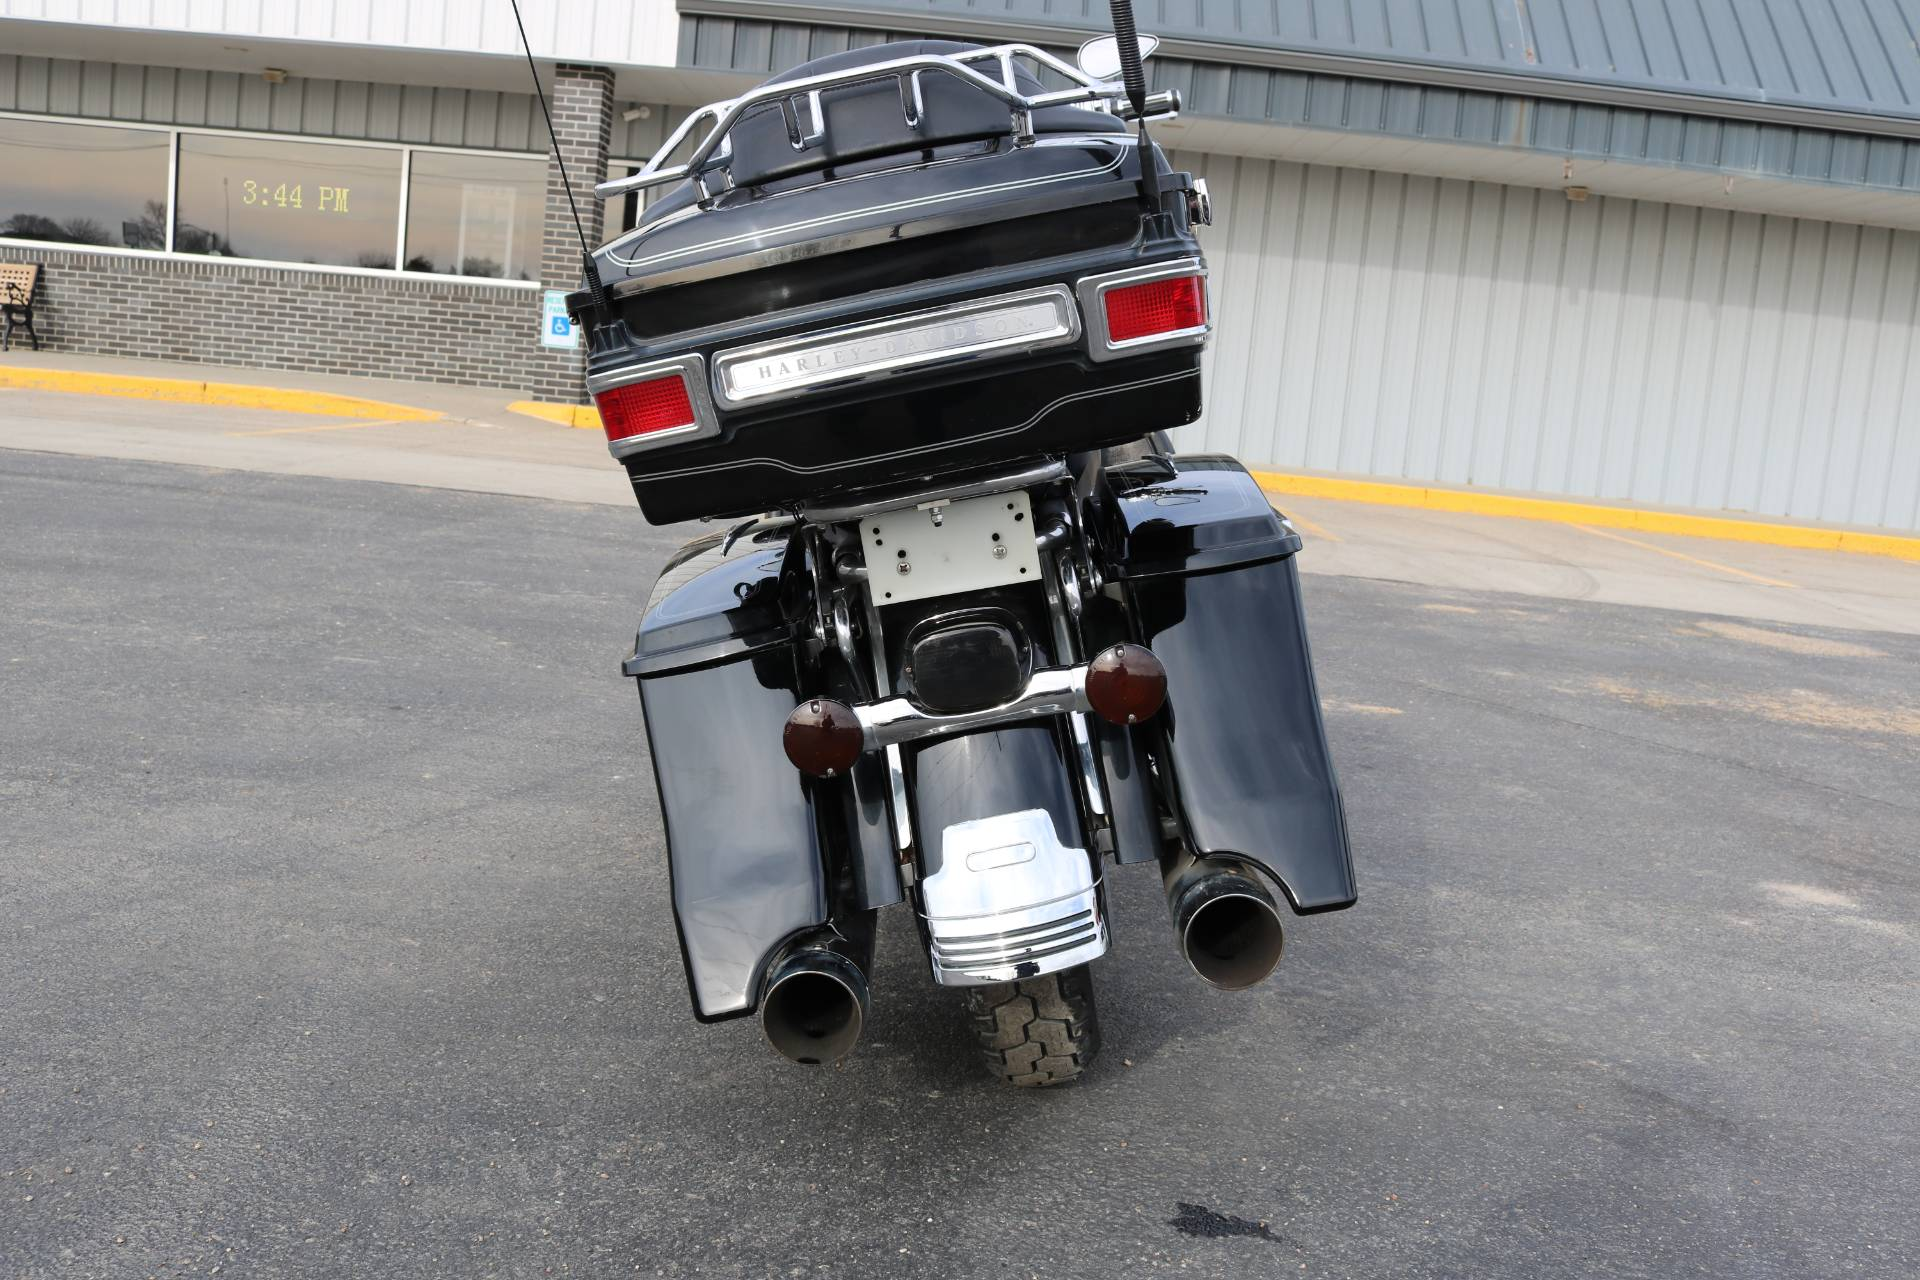 2005 Harley-Davidson FLHTCUI Ultra Classic® Electra Glide® in Carroll, Iowa - Photo 15